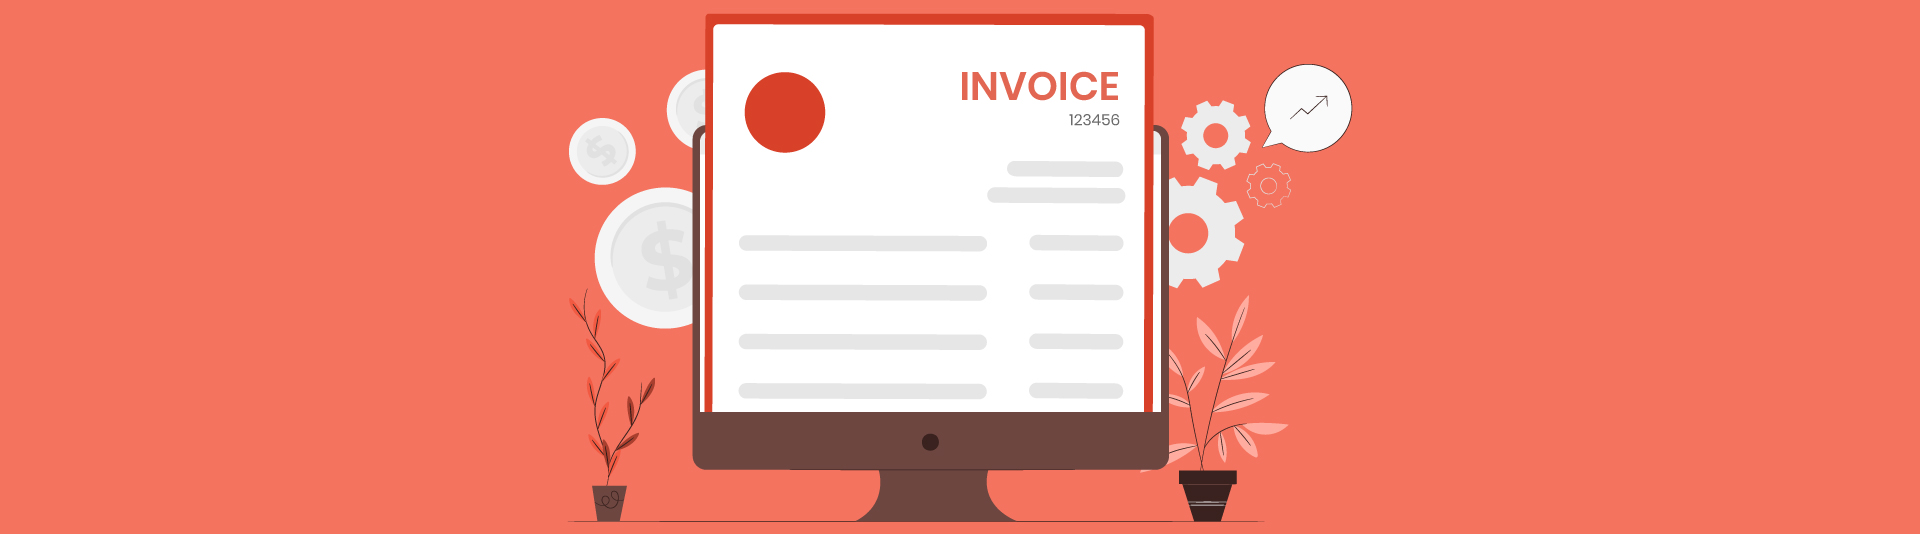 Want to Make an Invoice in OpenOffice